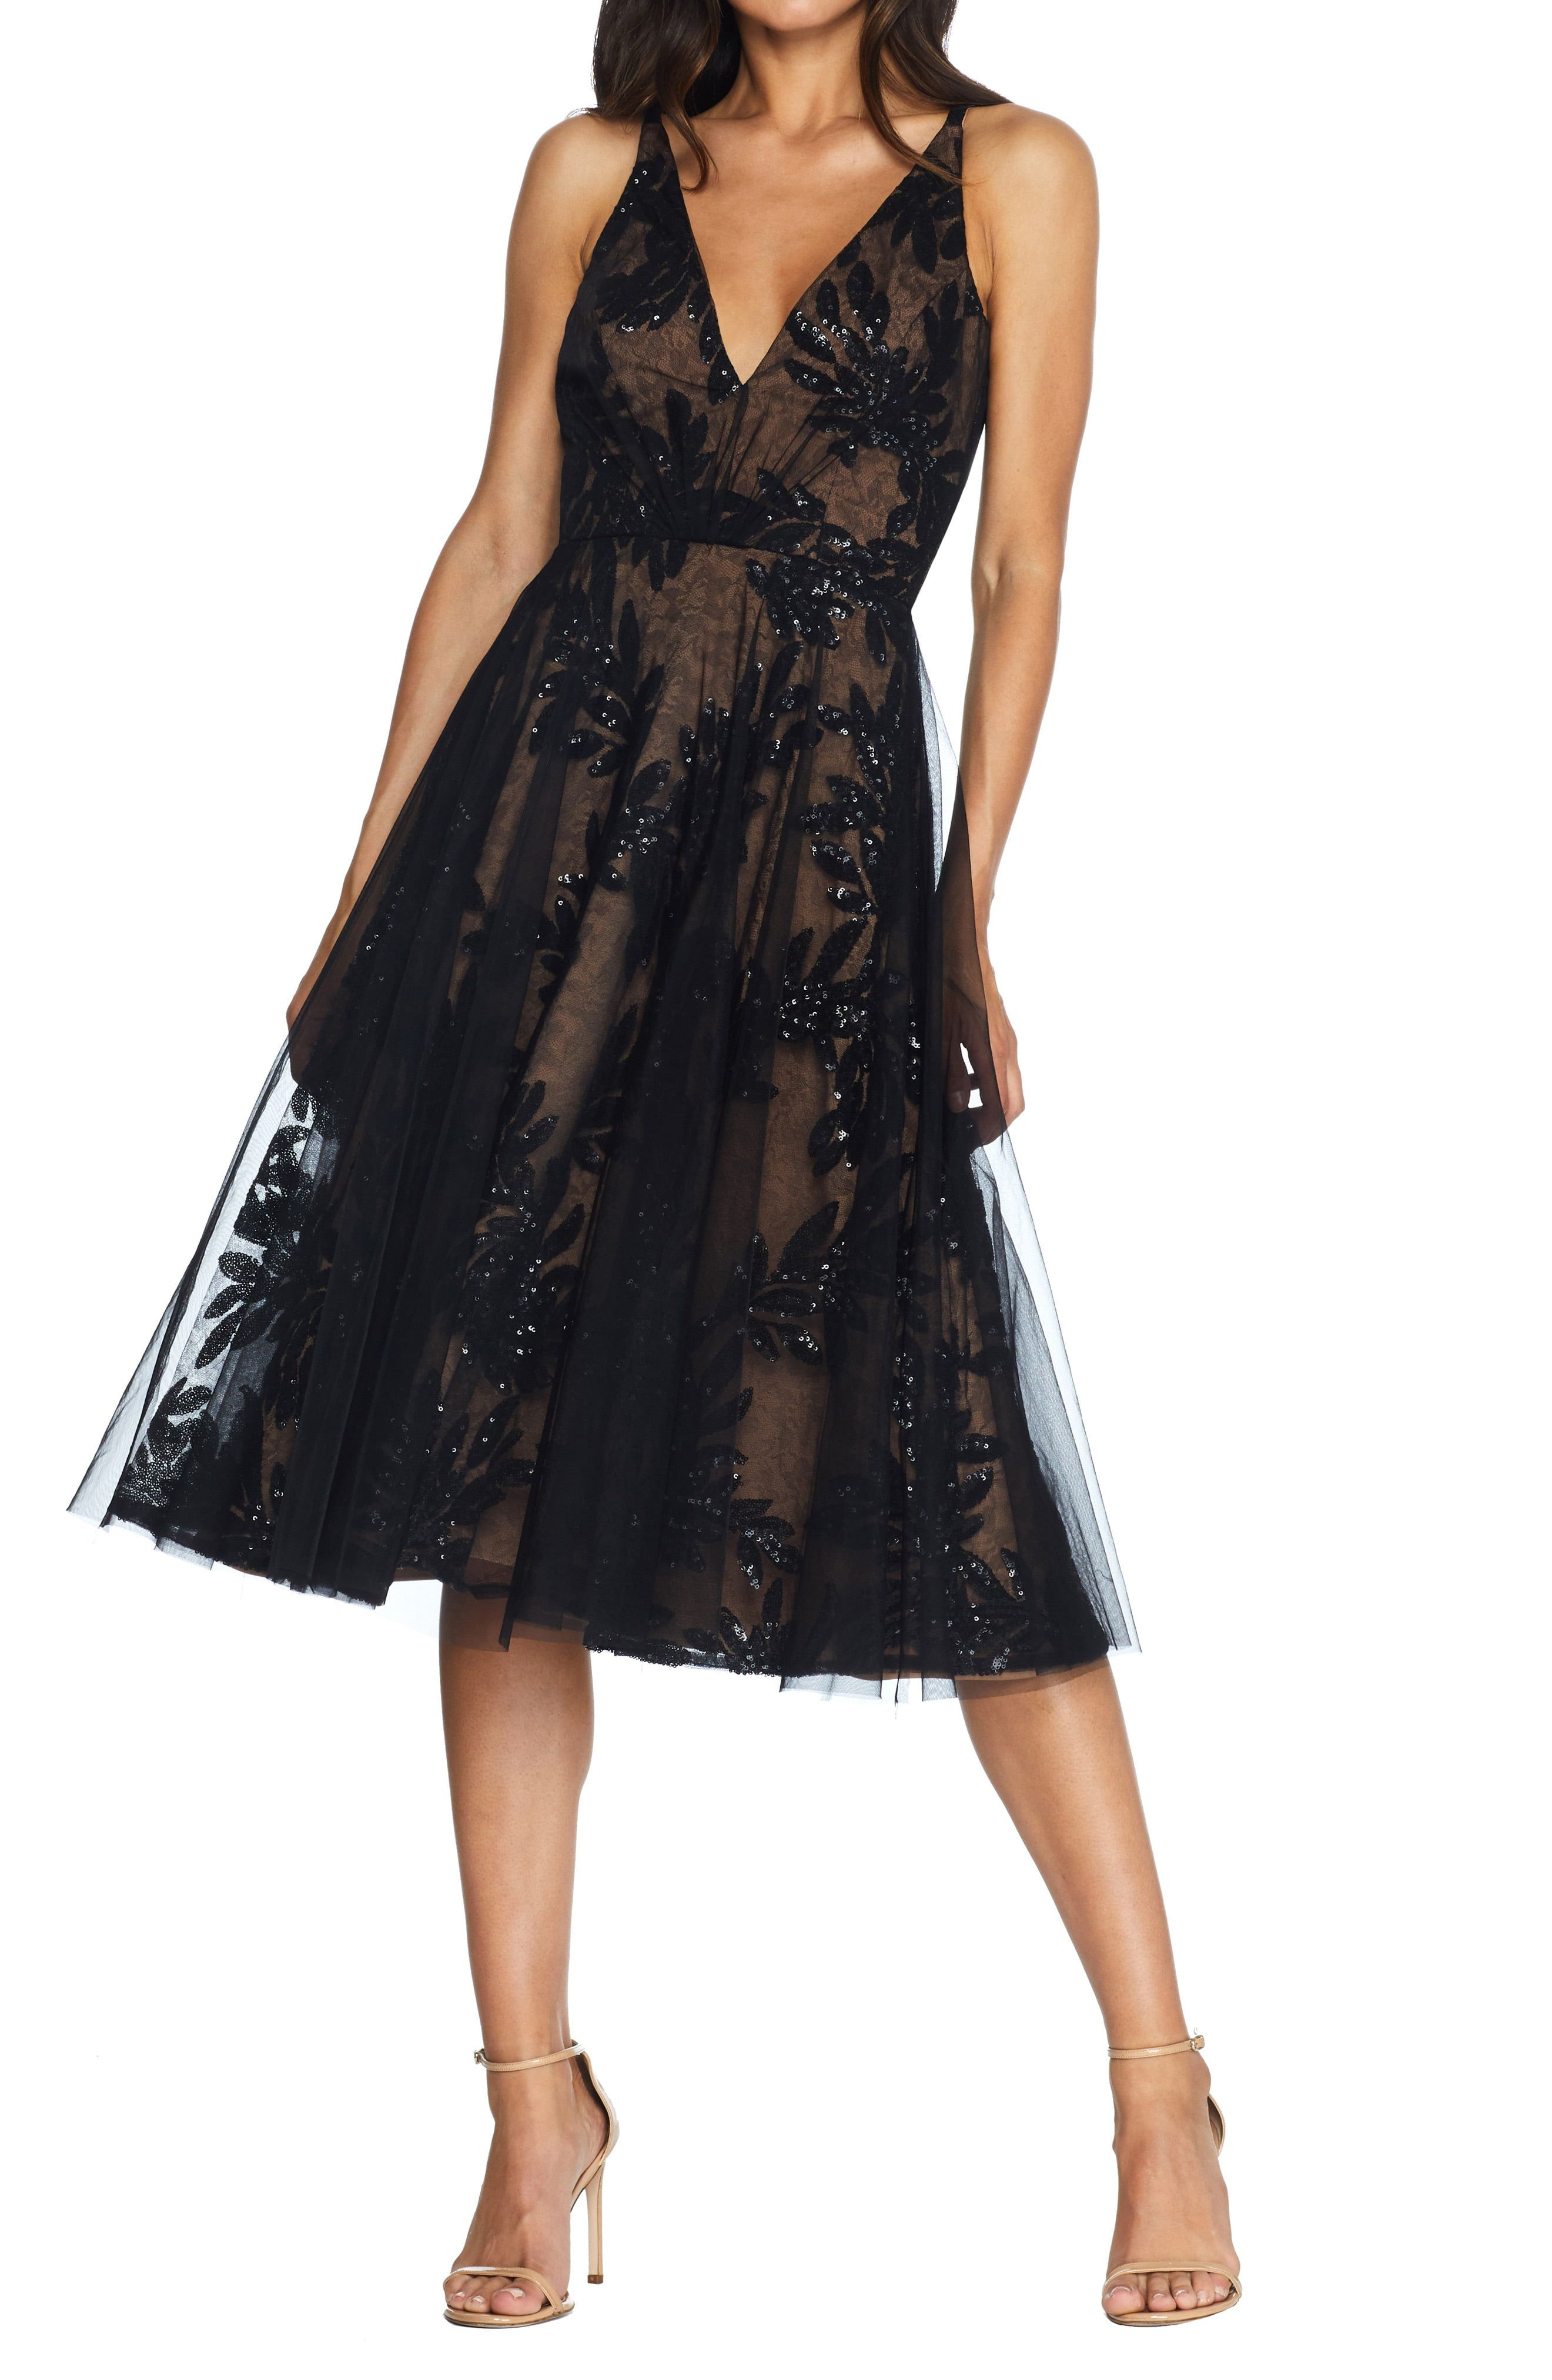 Dress The Population Courtney Sequin Lace Cocktail Dress Nordstrom In 2021 Cocktail Dress Lace Black Cocktail Dress Cocktail Dress [ 4048 x 2640 Pixel ]